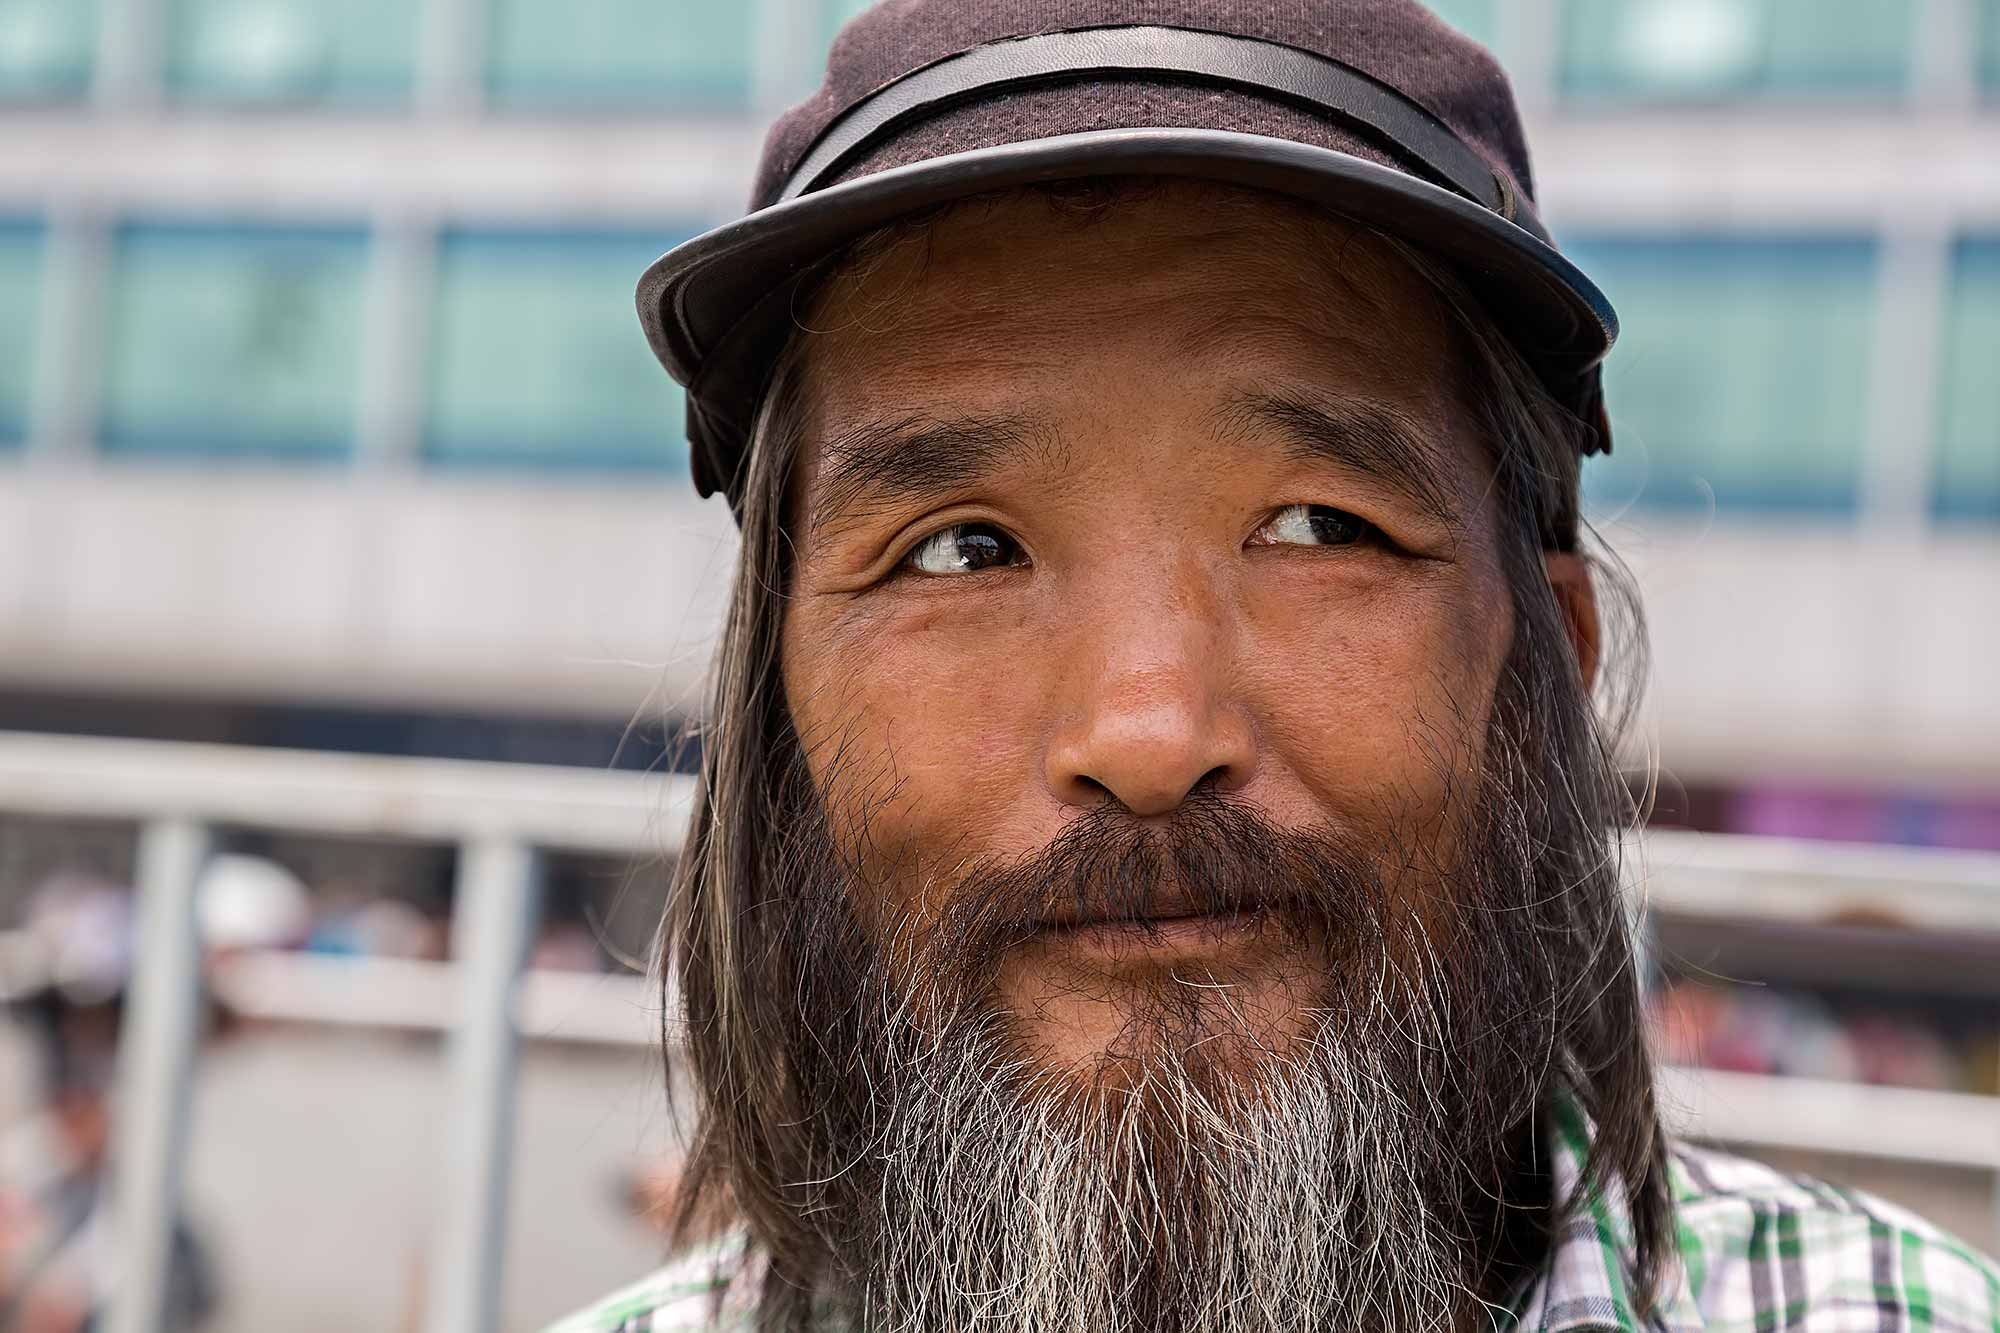 portrait-man-with-beard-guangzhou-china